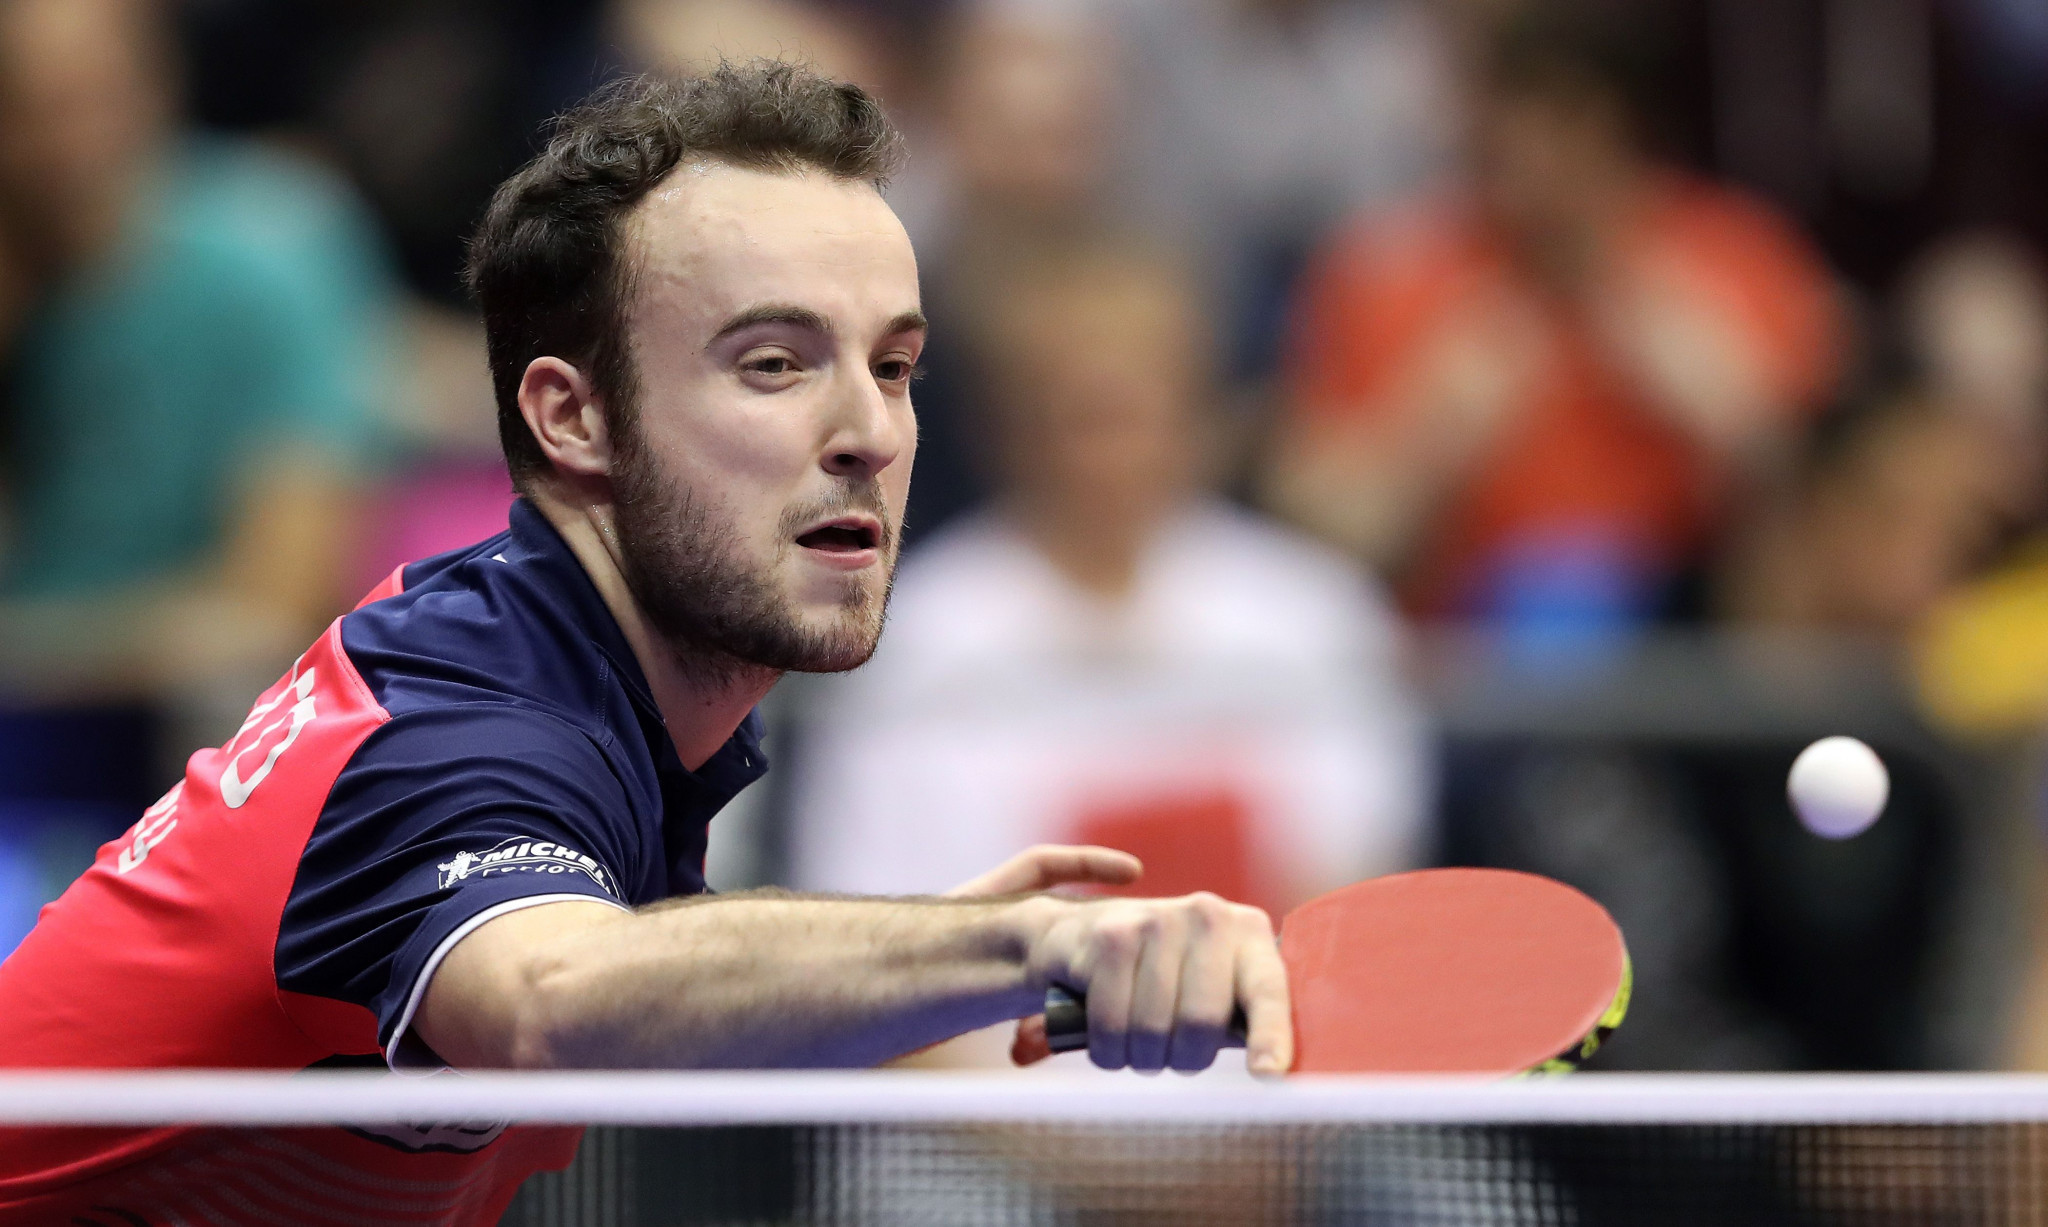 Growing table tennis in Europe will be Jonny Cowan's main responsibility ©Getty Images